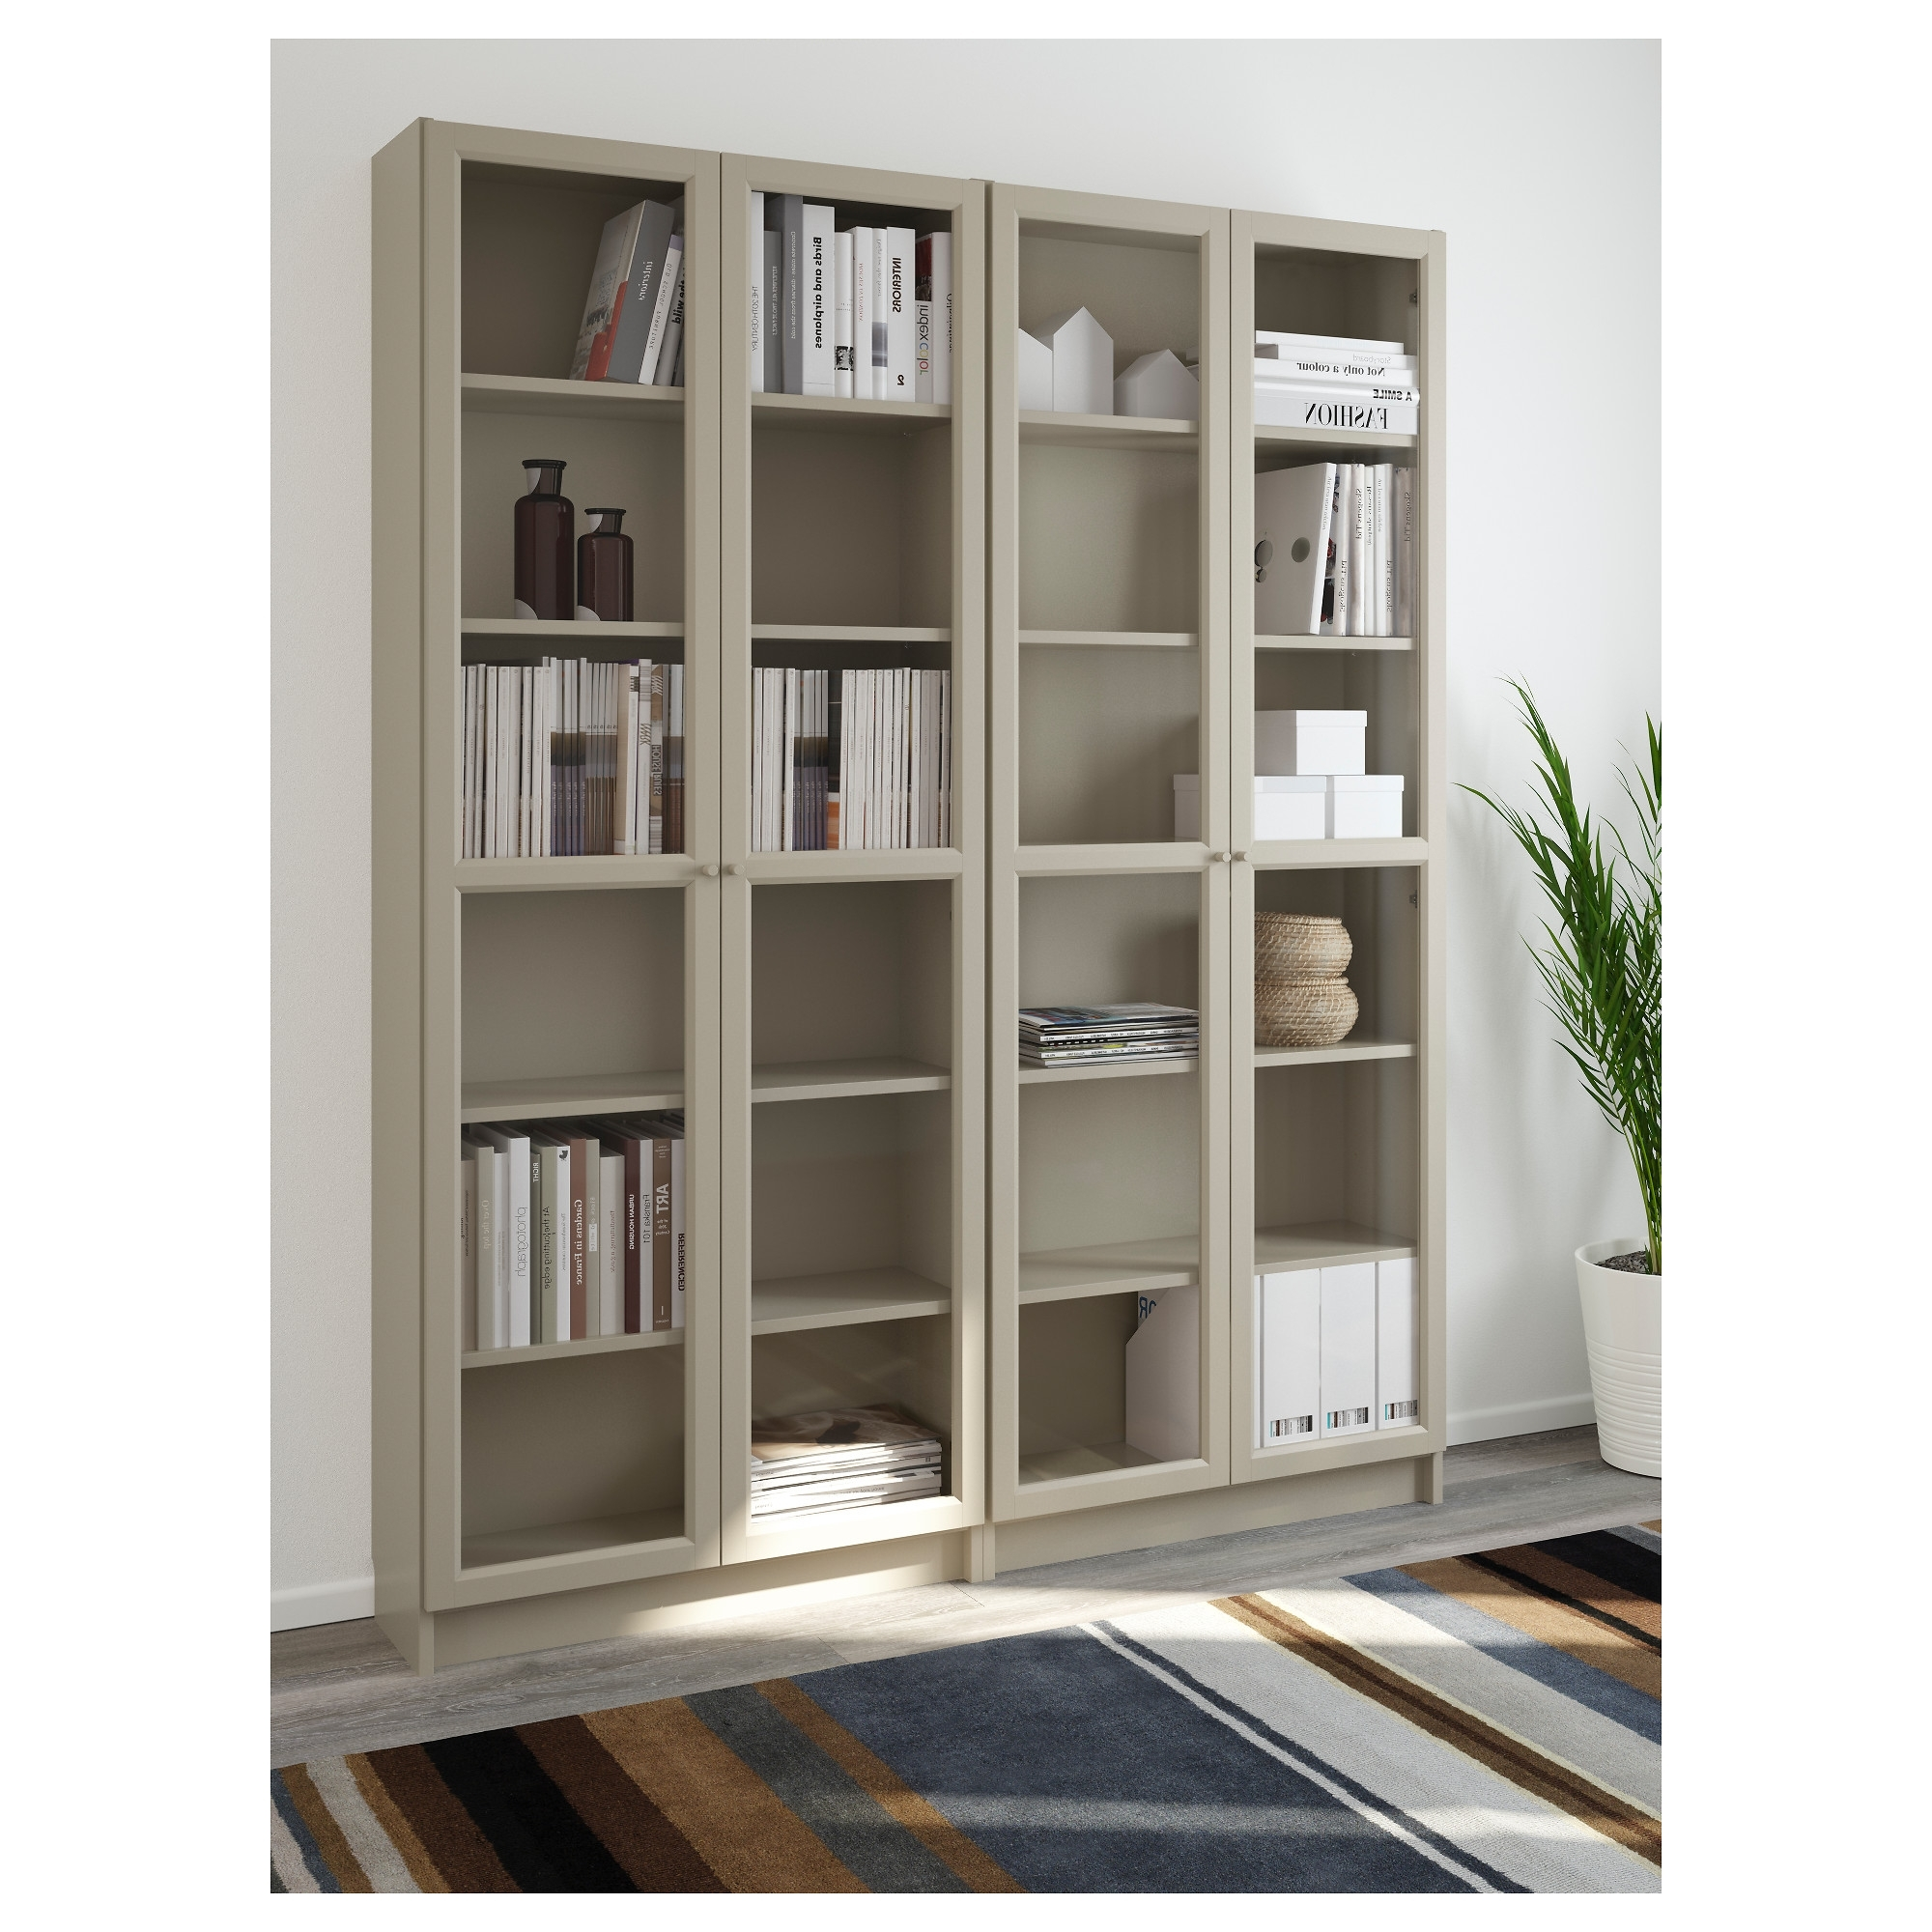 Bookcases With Glass Doors With Regard To Current Billy Bookcase – Beige – Ikea (View 6 of 15)